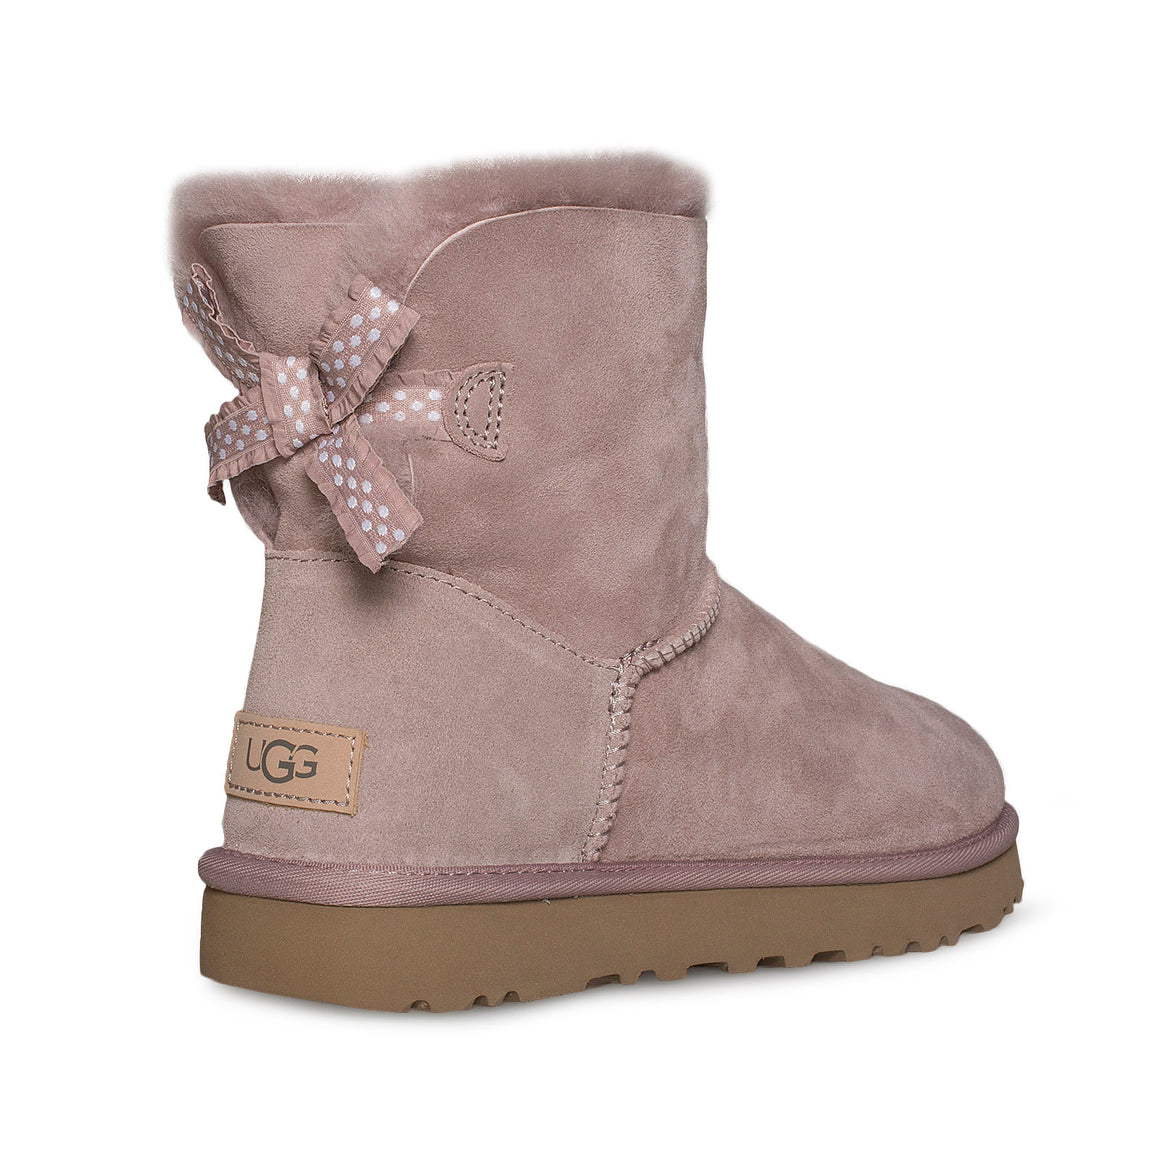 UGG Mini Bailey Bow II Ruffled Dusk Boots - Women's